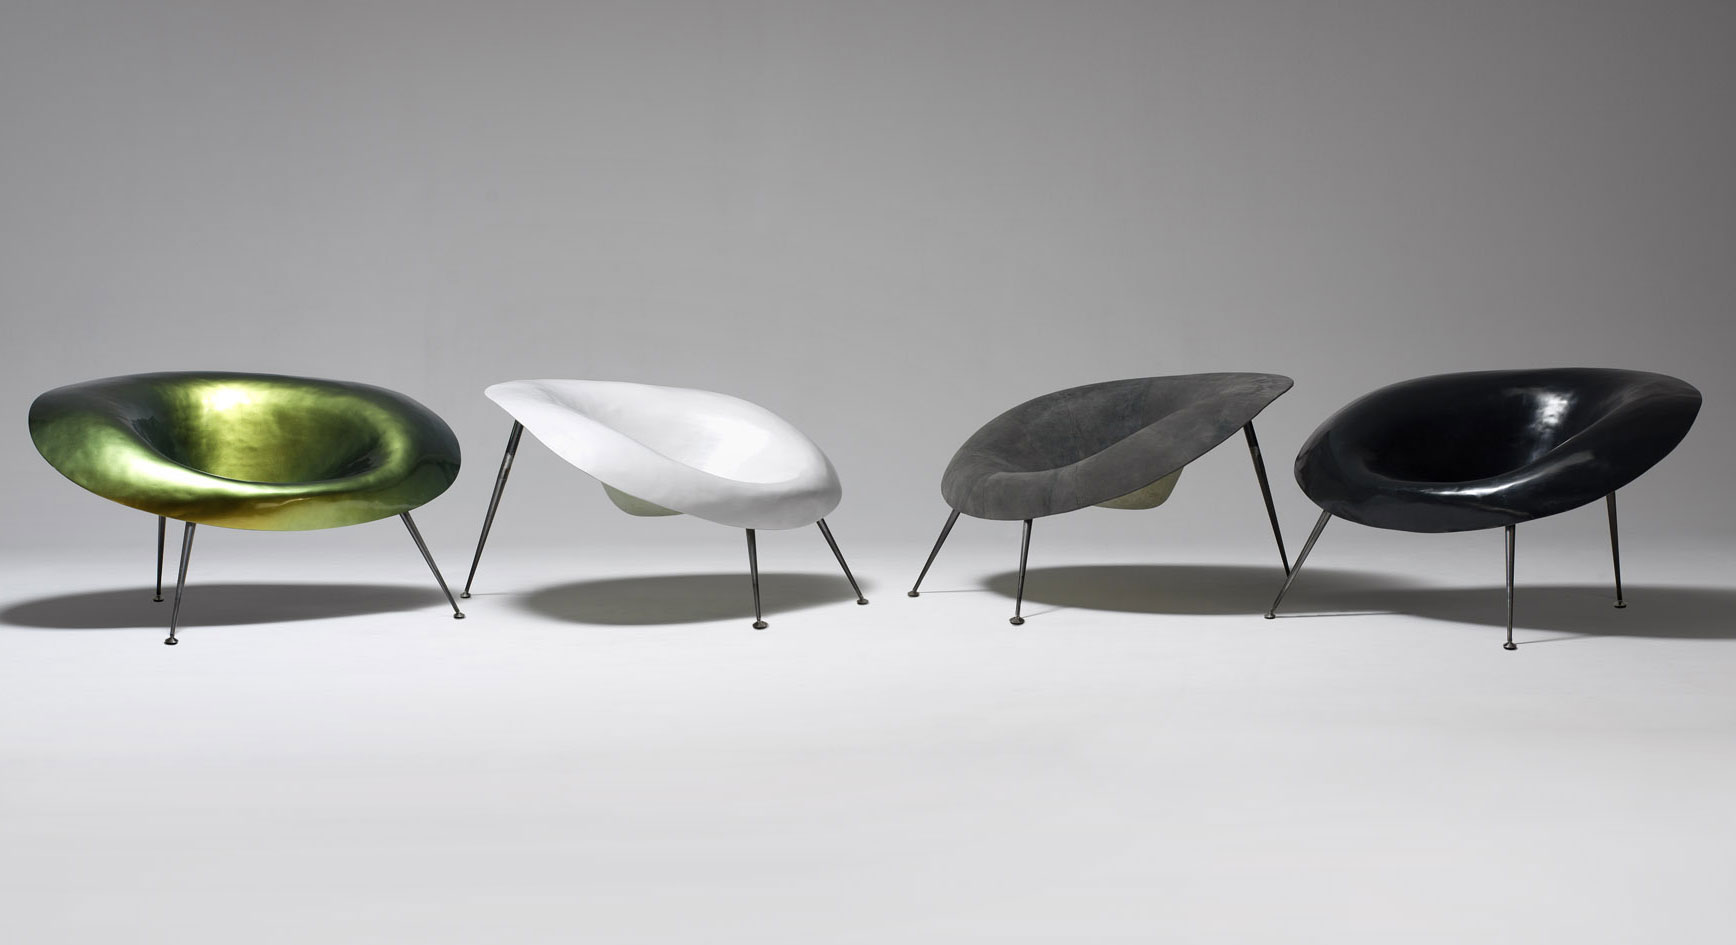 nido chair by imperfettolab wood furniture